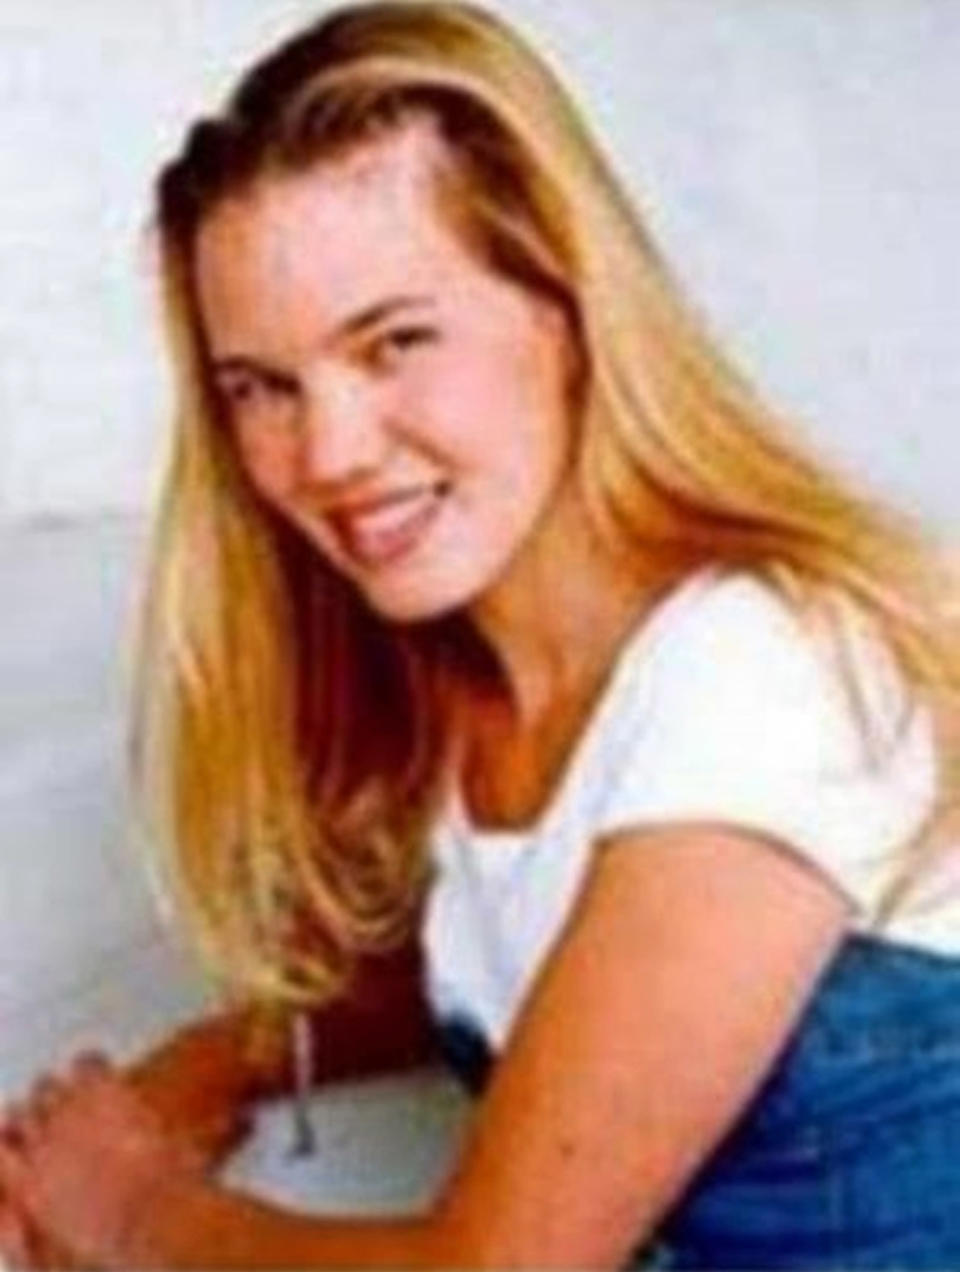 FILE - This undated photo released by the FBI shows Kristin Smart, the California Polytechnic State University, San Luis Obispo student who disappeared in 1996. The San Luis Obispo County sheriff plans a major announcement Tuesday, April 13, 2021, in the nearly 25-year mystery of the disappearance of Smart. (FBI via AP, File)